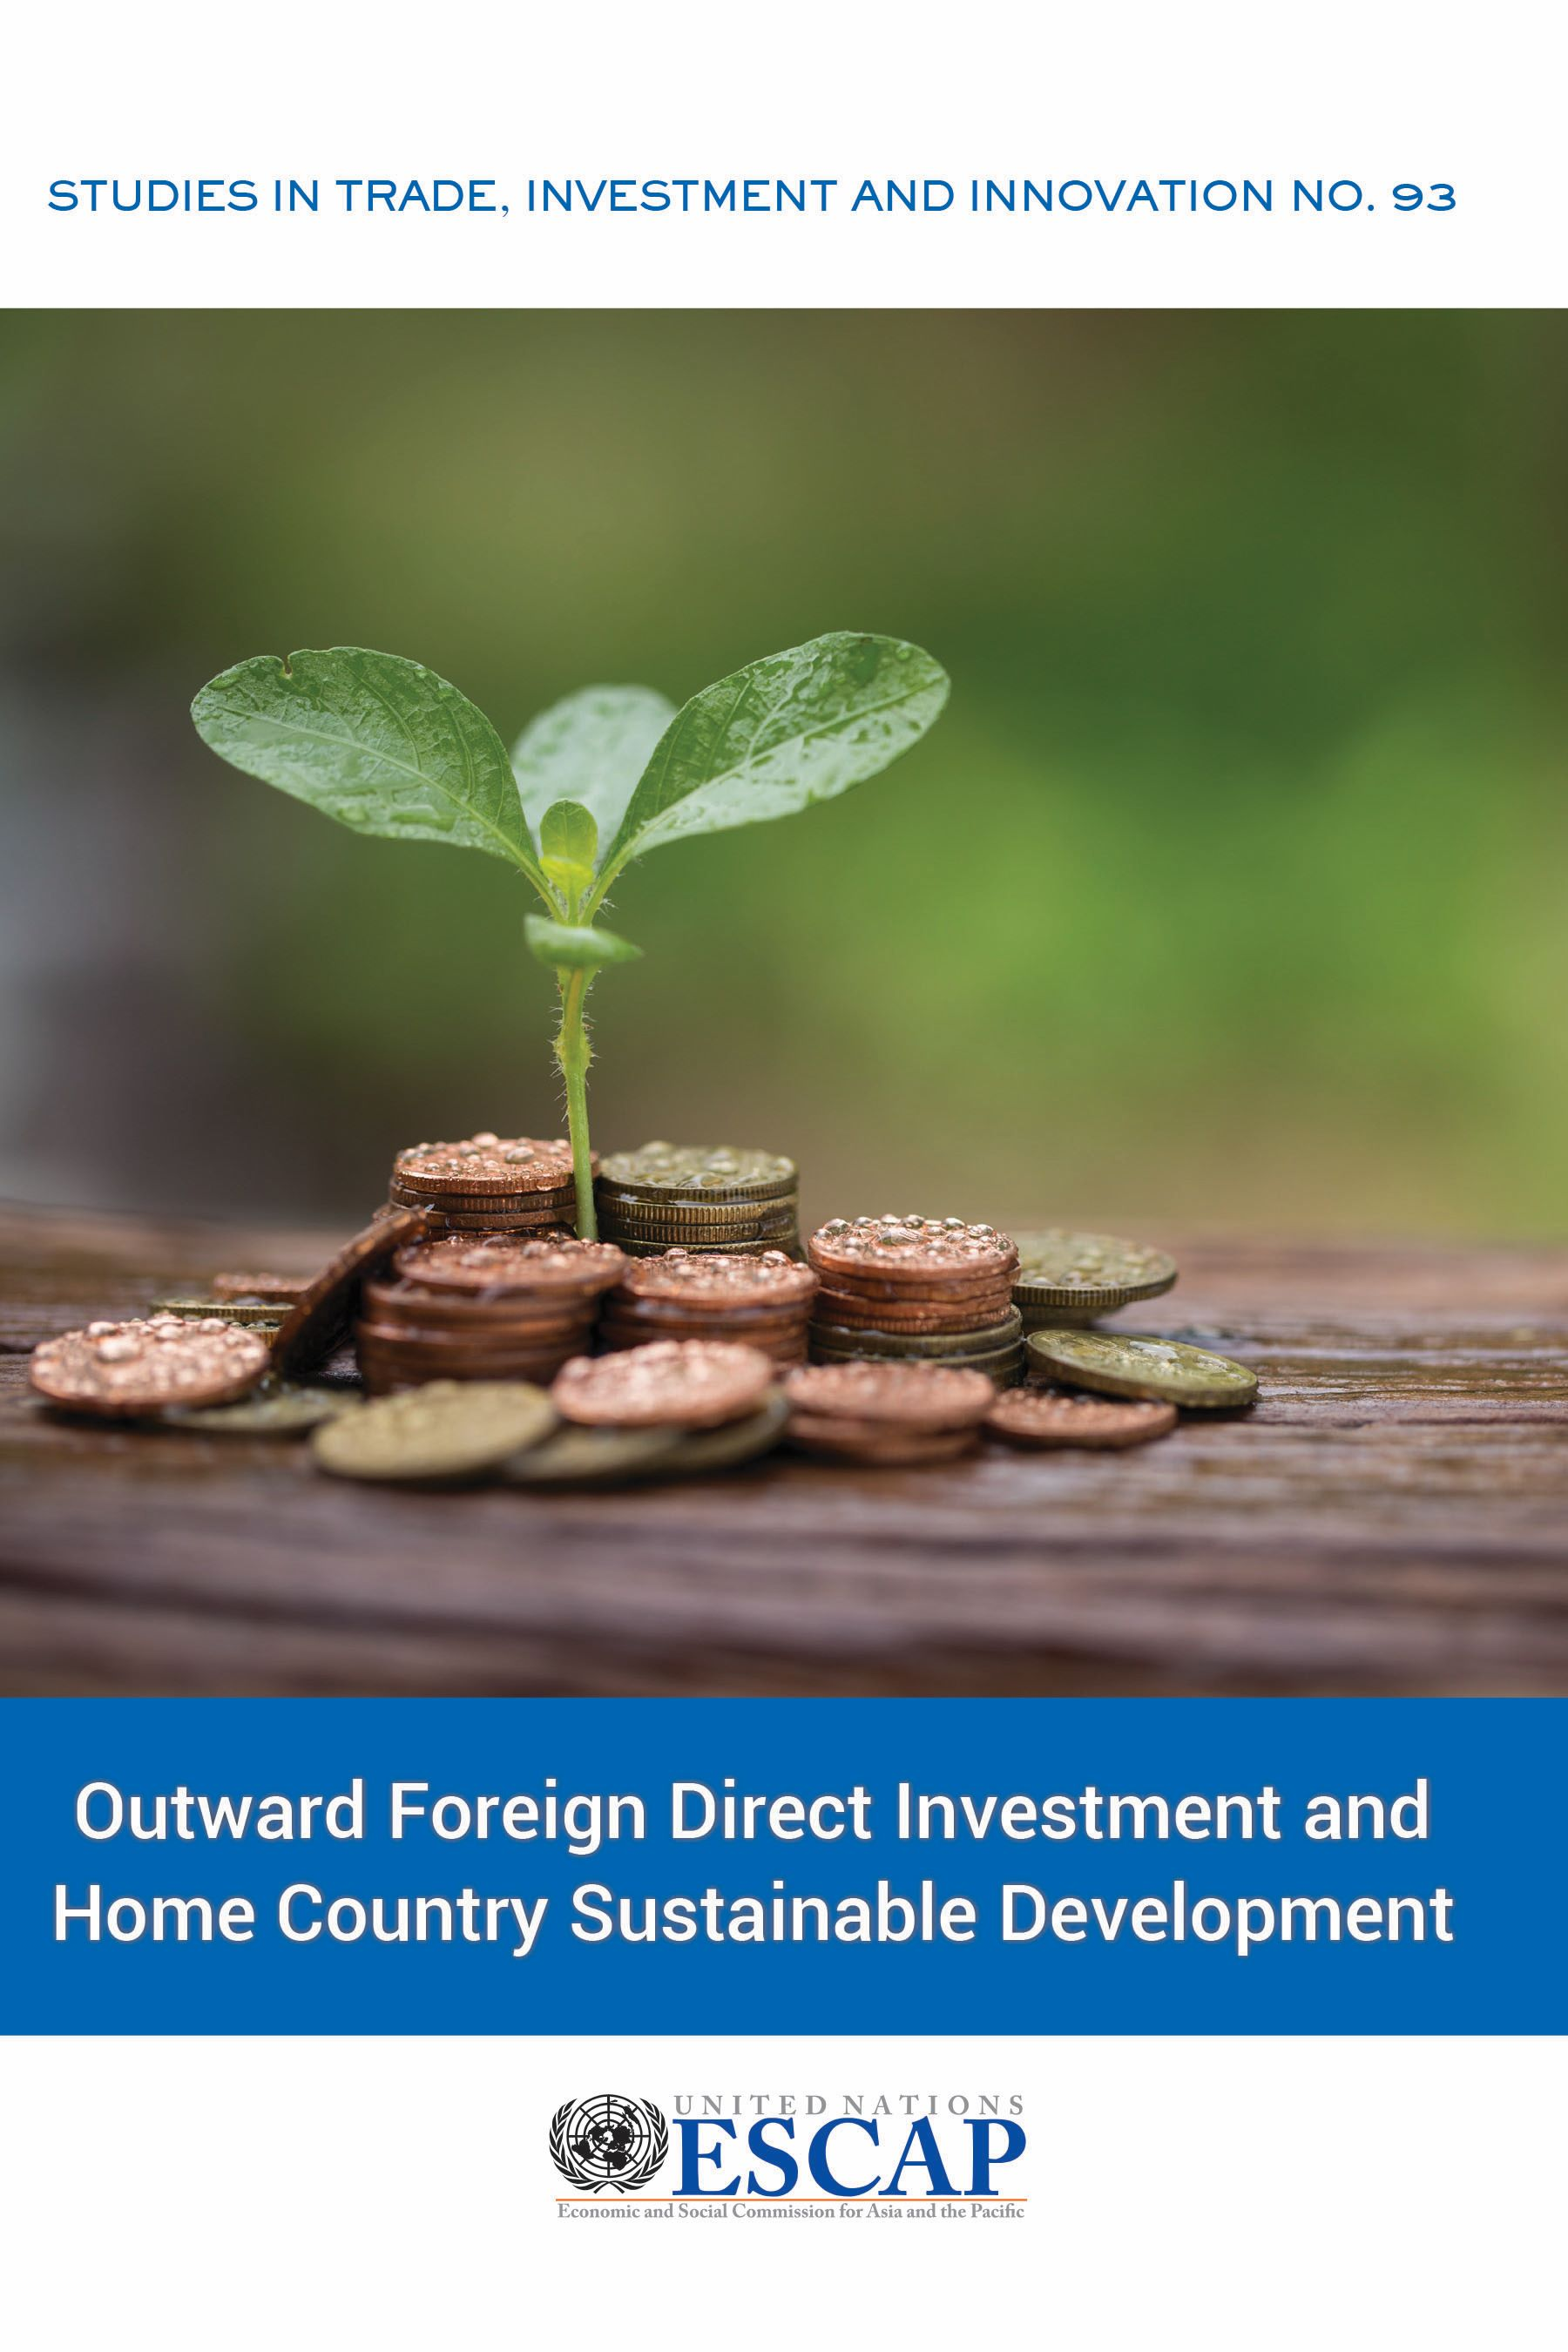 Publication: Outward Foreign Direct Investment and Home Country Sustainable Development, Studies in Trade, Investment and Innovation No. 93